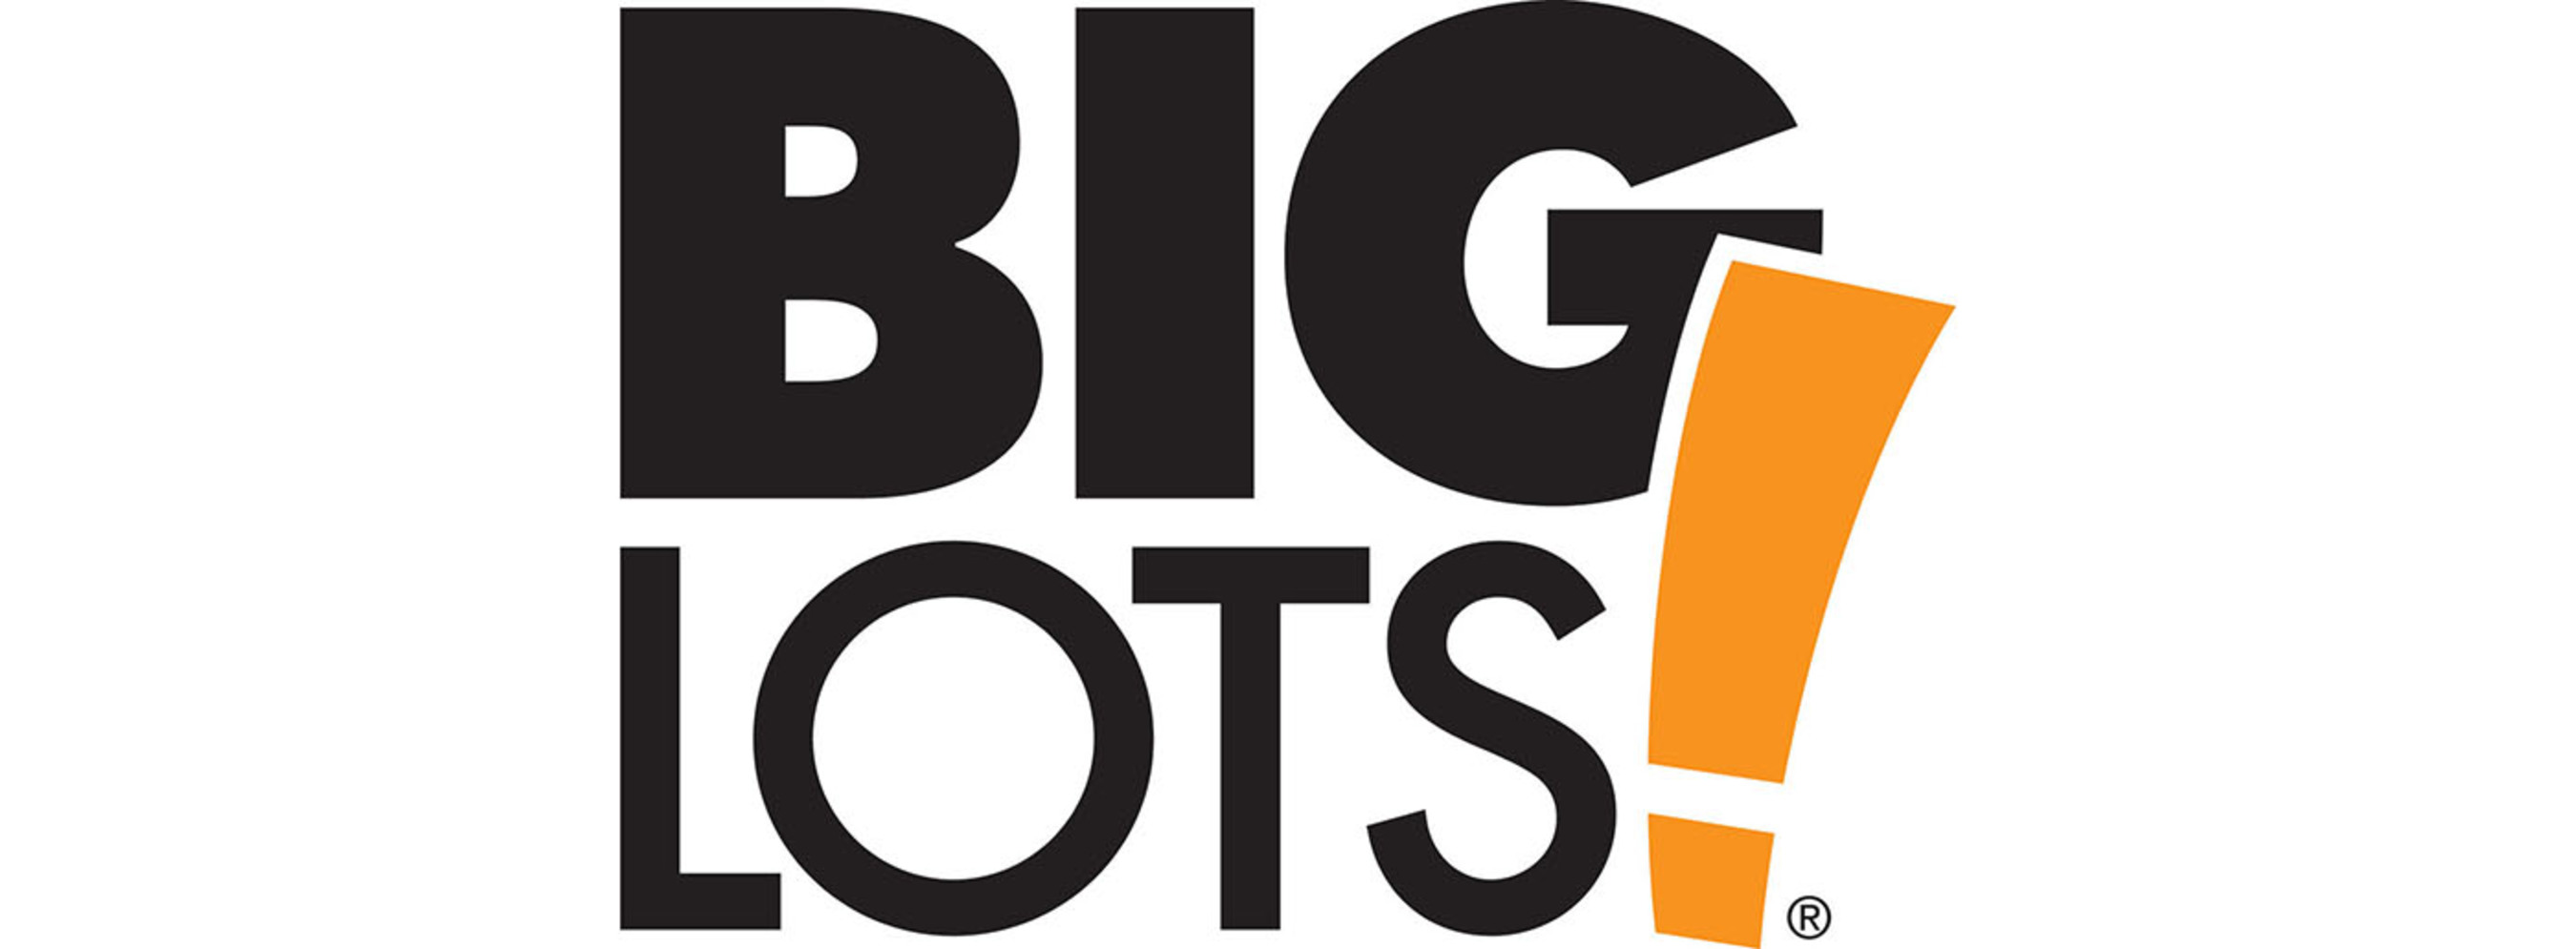 Big Lots To Broadcast Second Quarter 2015 Conference Call